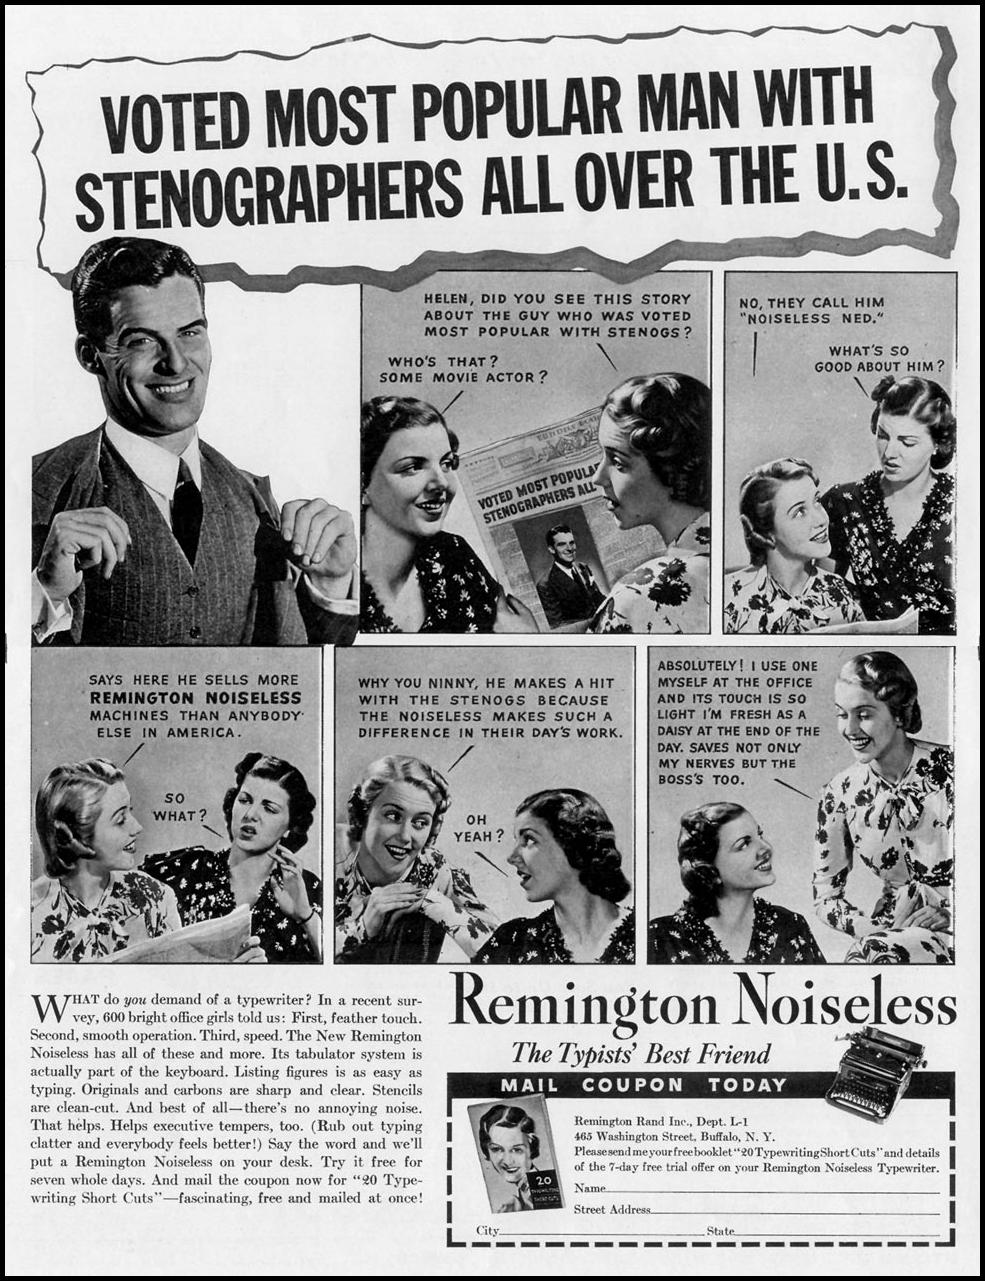 REMINGTON NOISELESS TYPEWRITERS LIFE 07/26/1937 p. 2